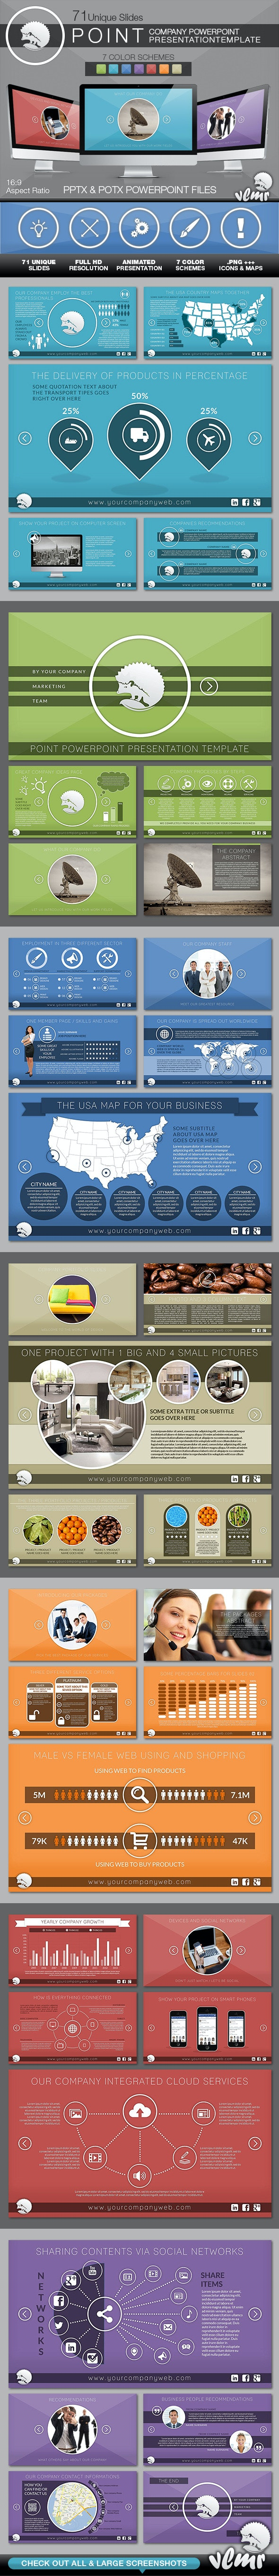 Point Company PowerPoint Presentation Template - Business PowerPoint Templates